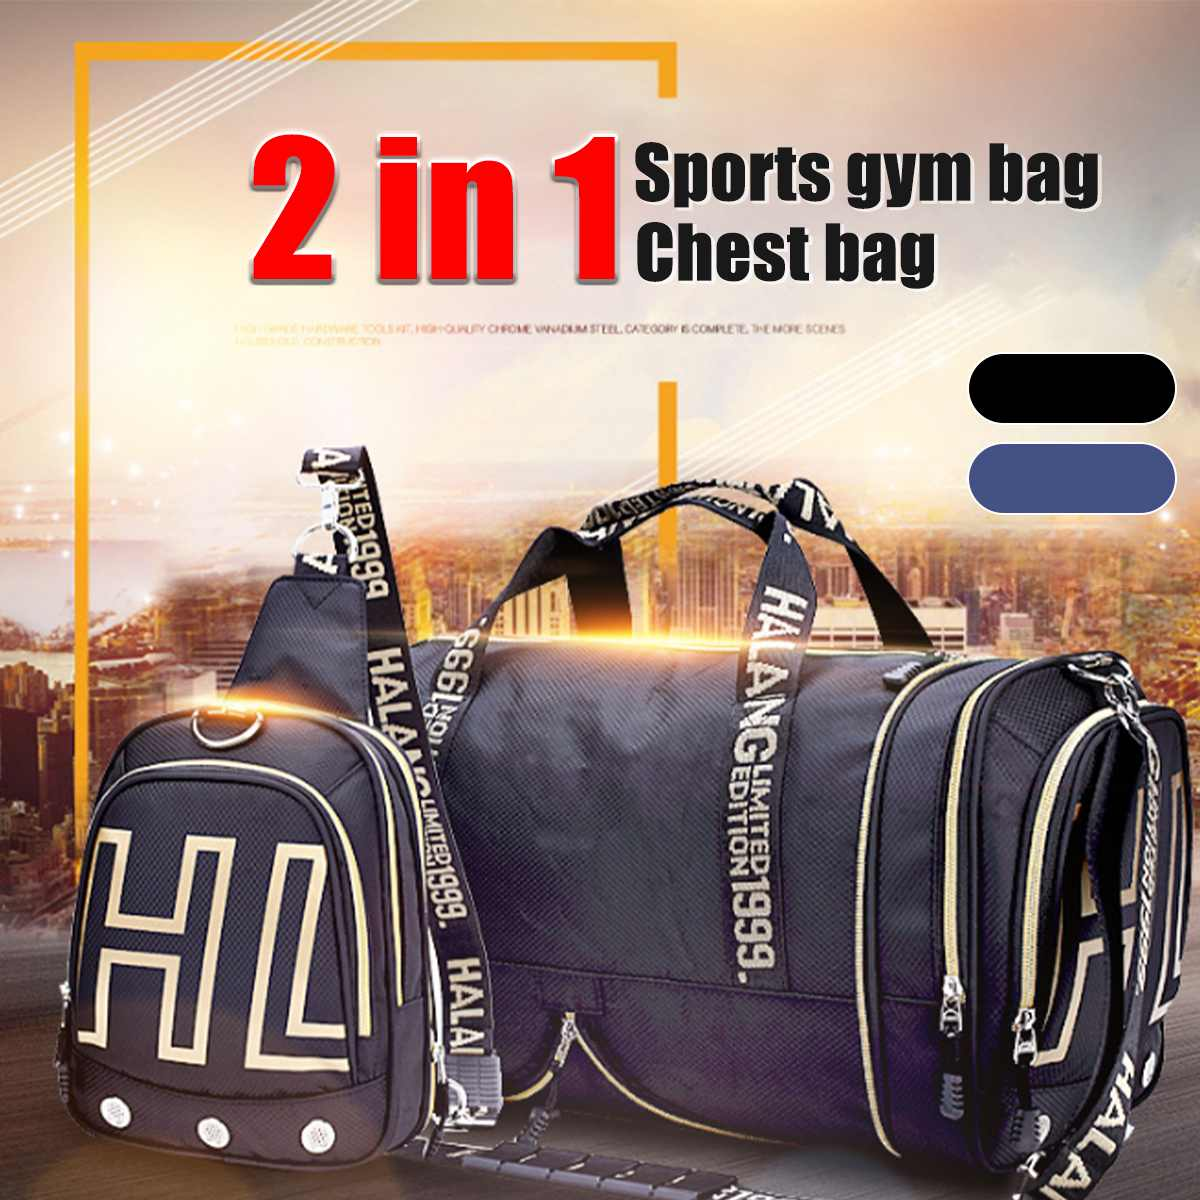 2020 2 IN 1 Sports Gym Men Women Duffle Bag Chest Bag Fitness Travel Dry Wet Gymtas Yoga Carry On Shoulder Handbag Luggage